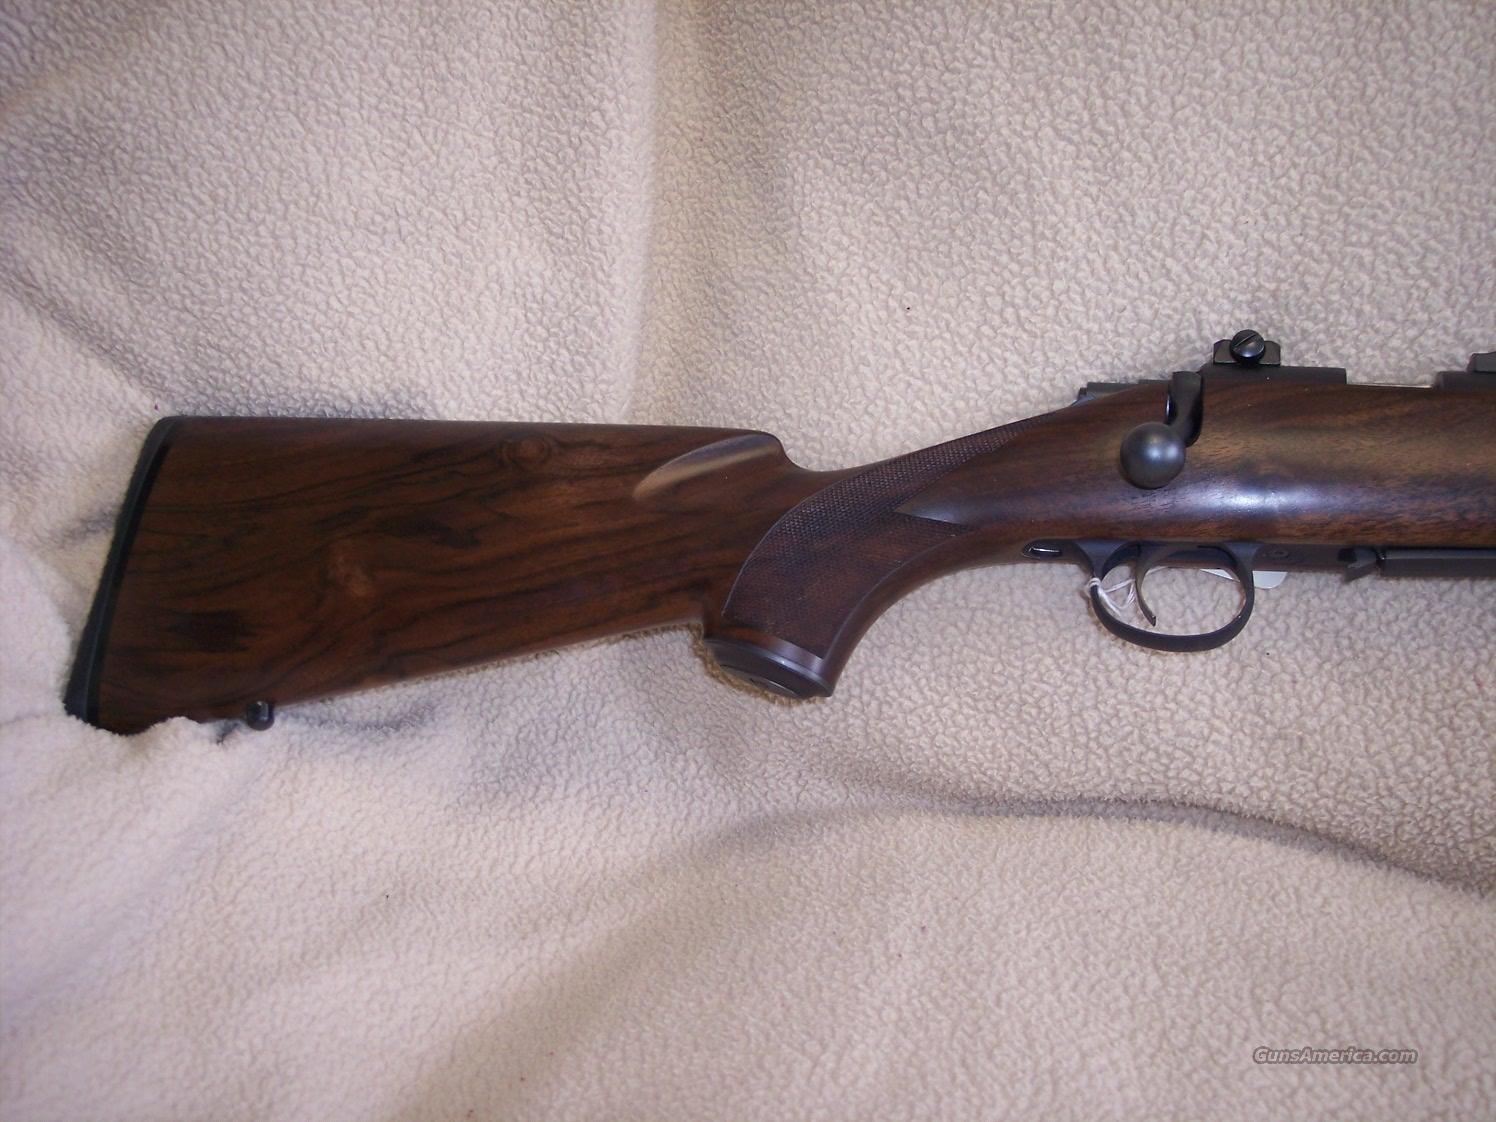 COOPER  M57  Guns > Rifles > Cooper Arms Rifles